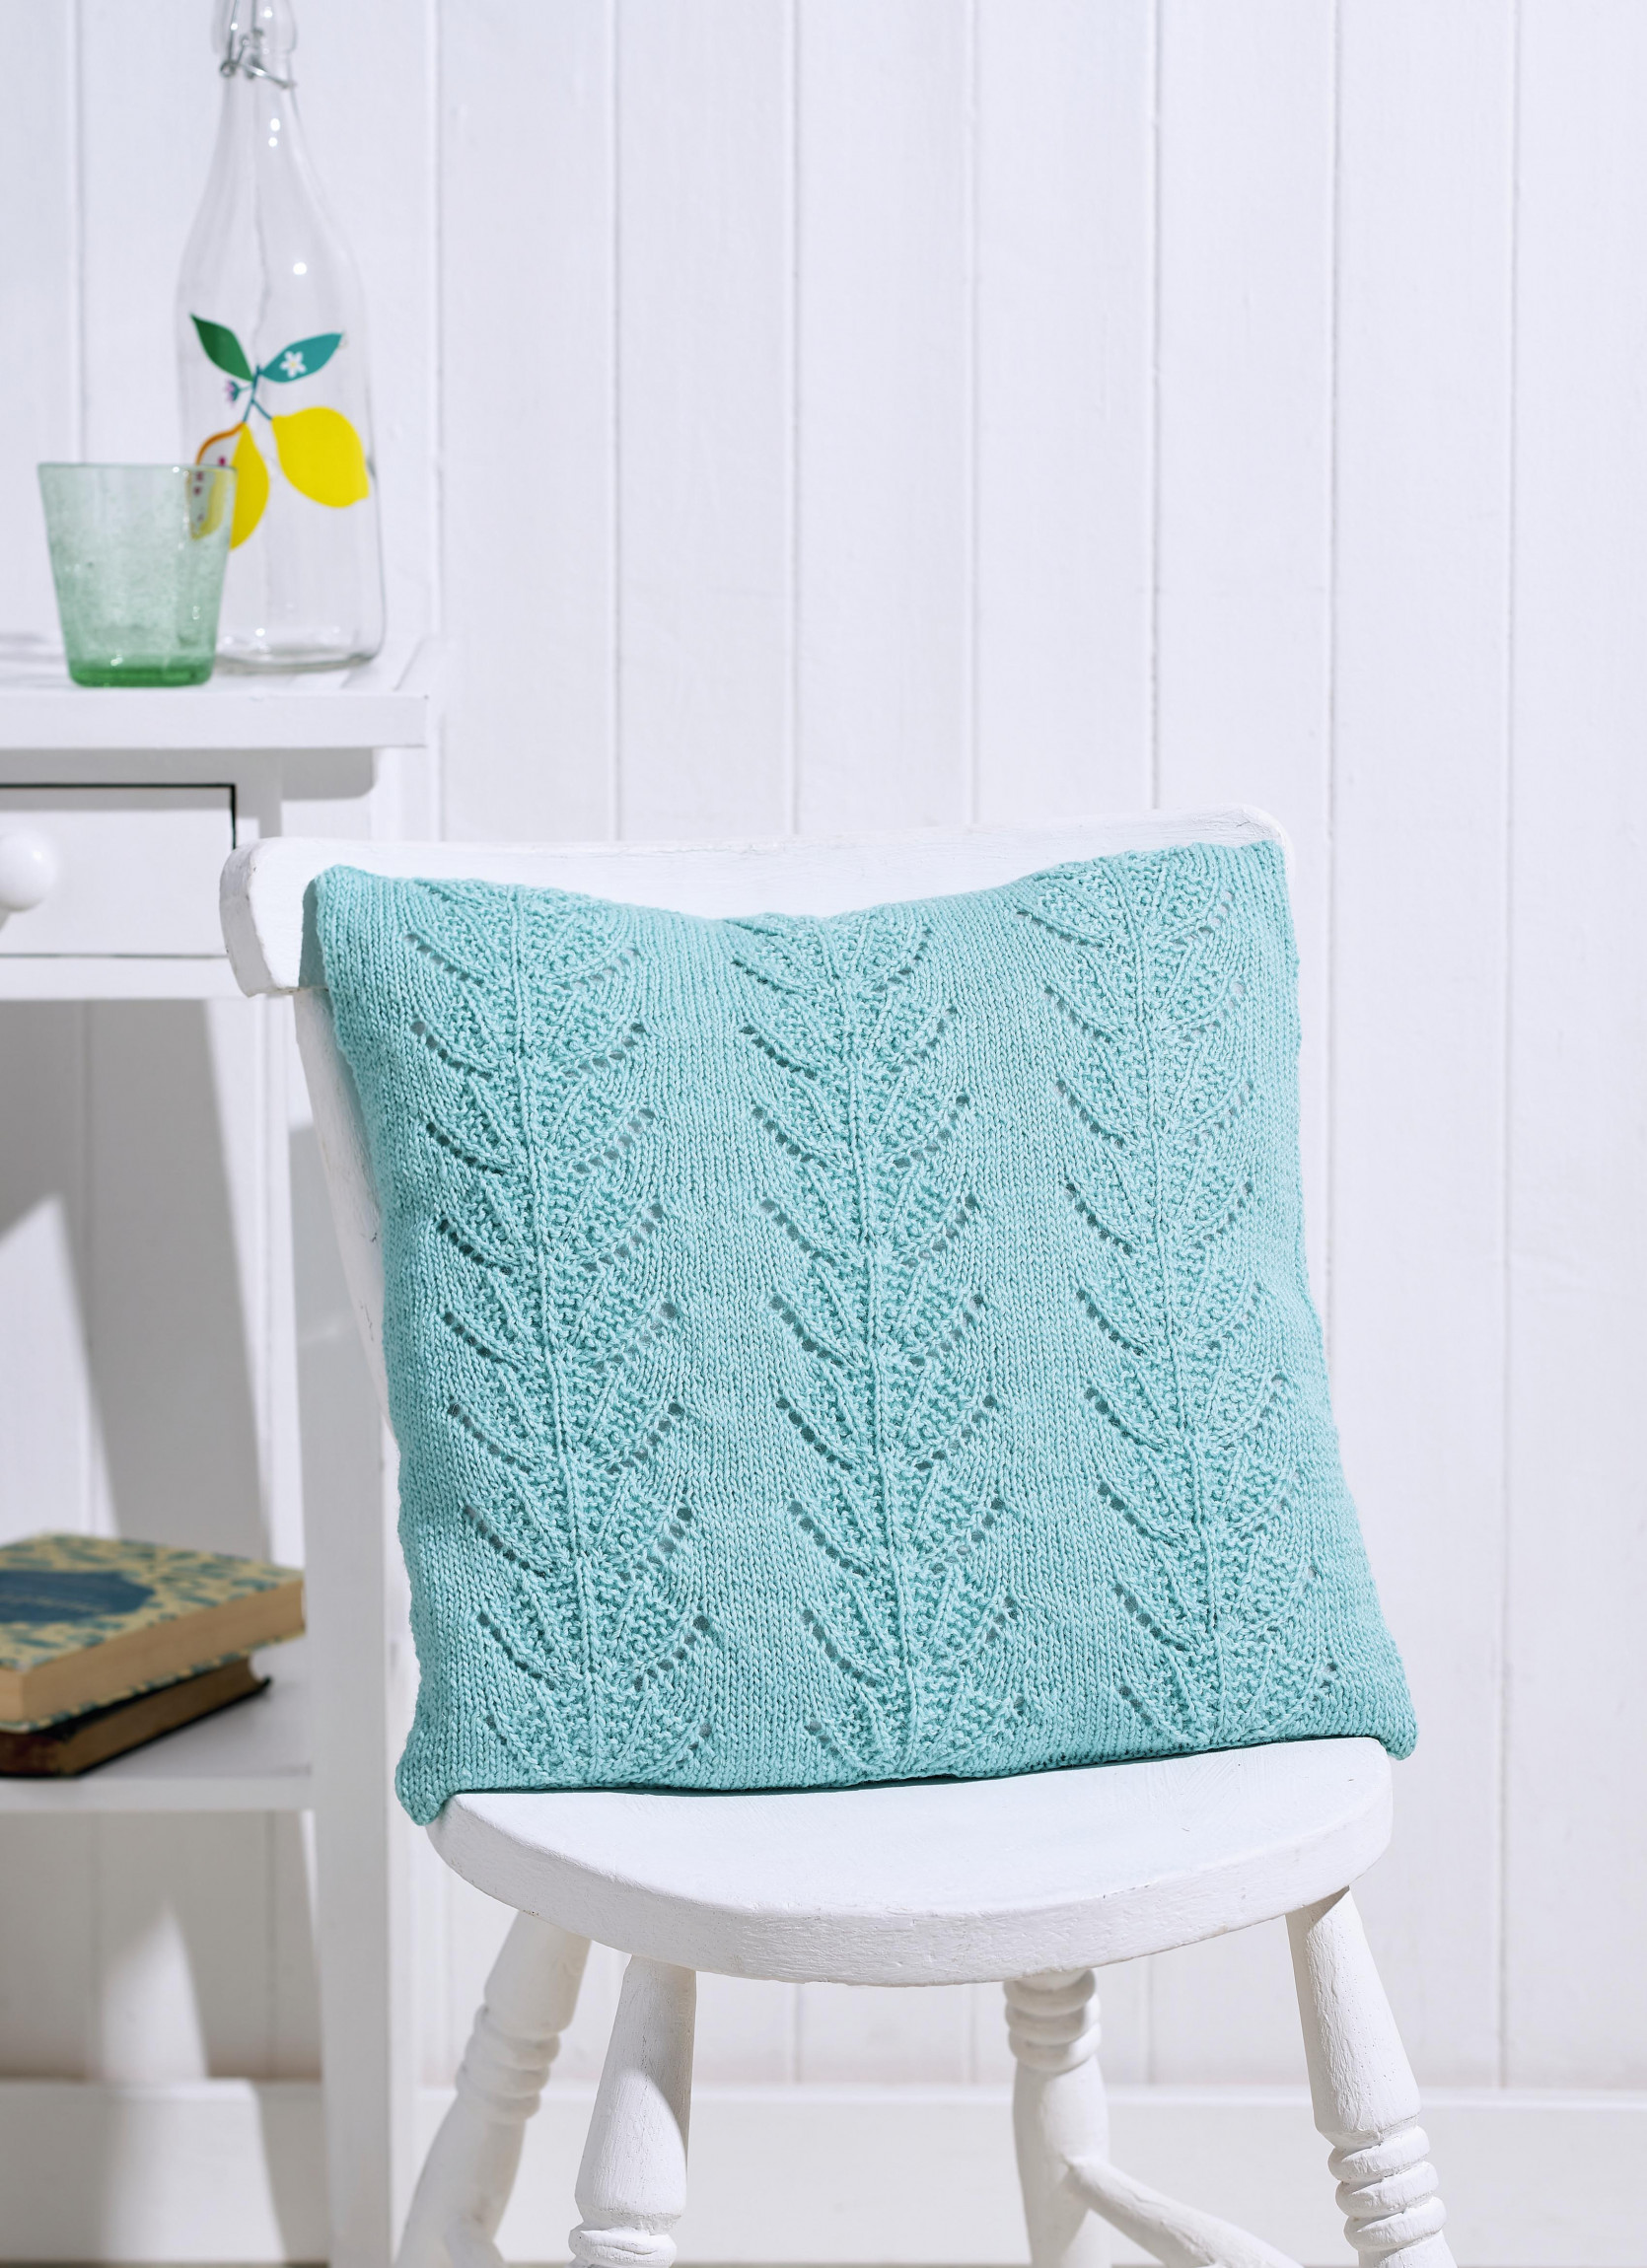 Beginner's Lace Cushion | Knitting Patterns | Let's Knit ...